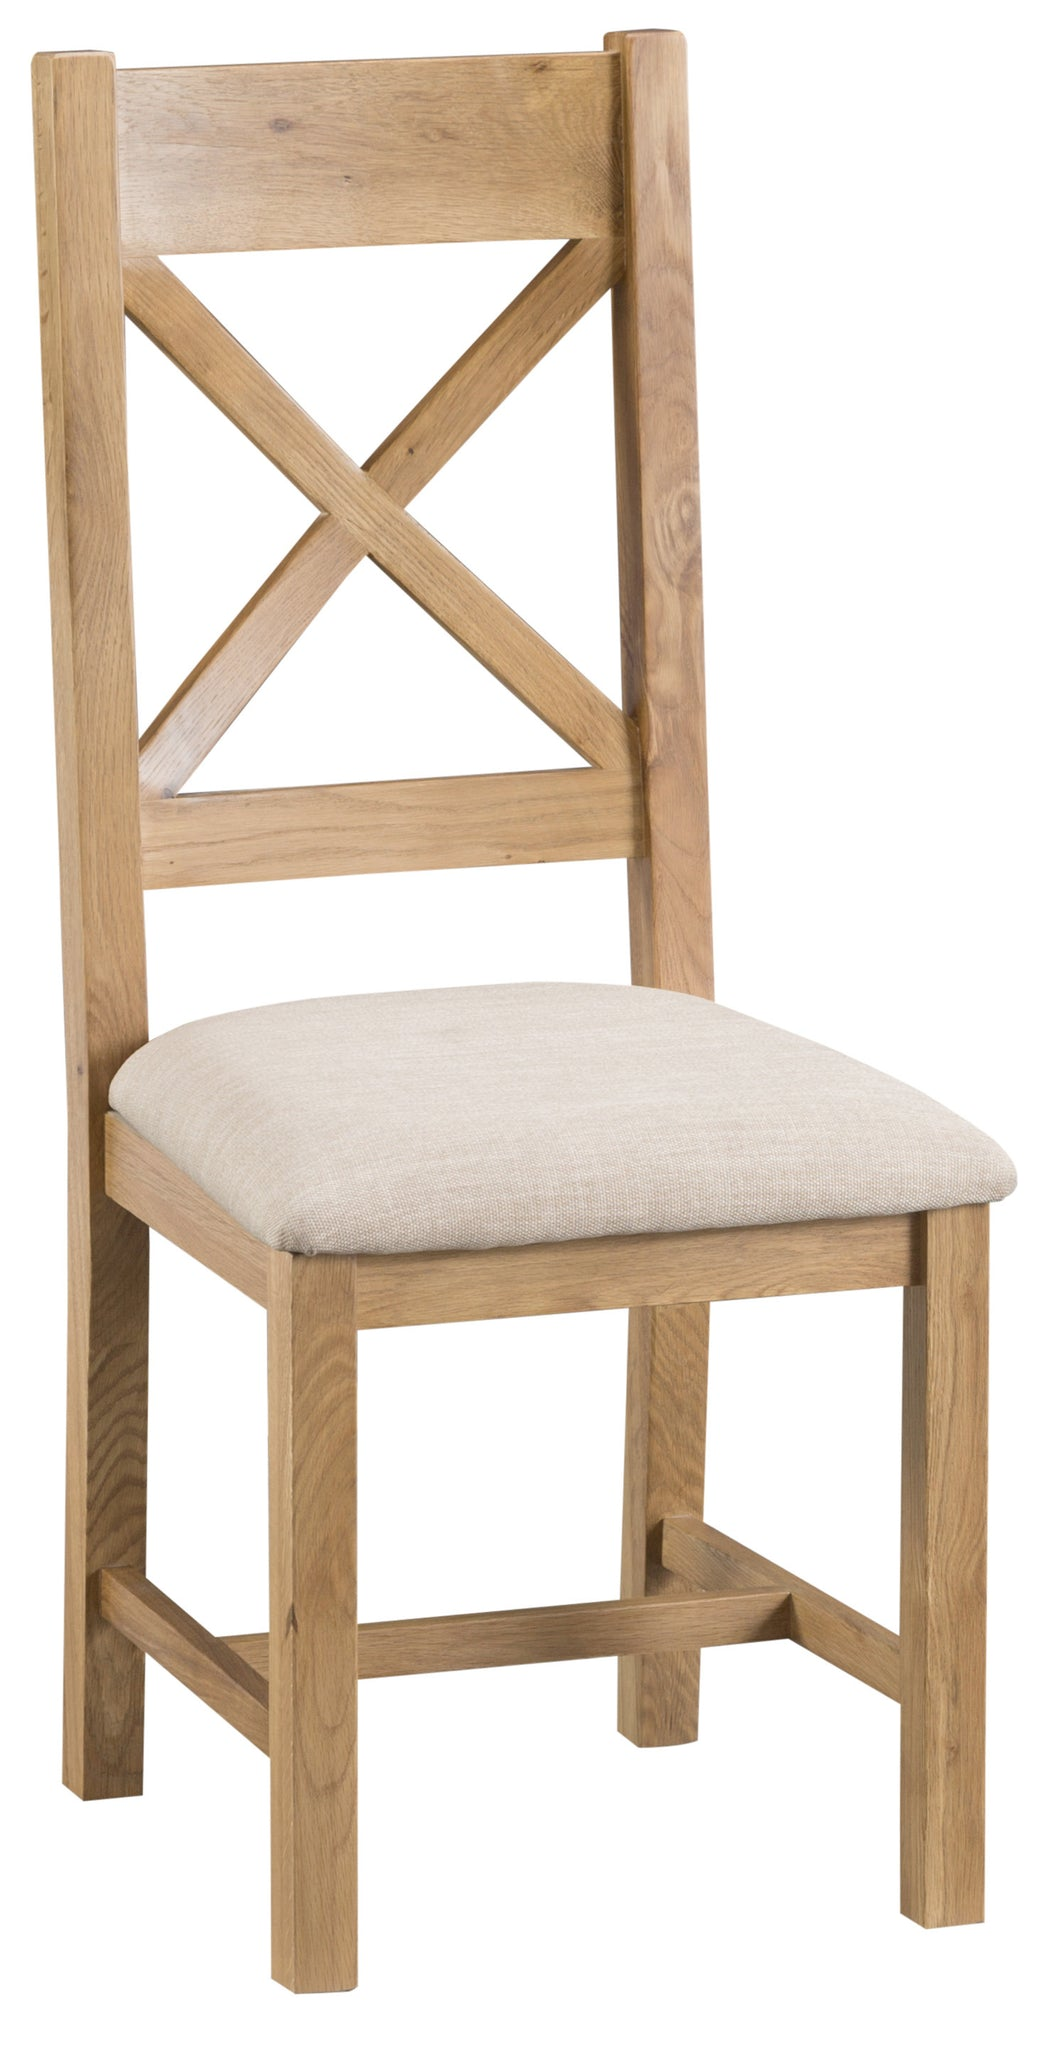 Claudio Cross Back Chair Wooden Seat Fabric